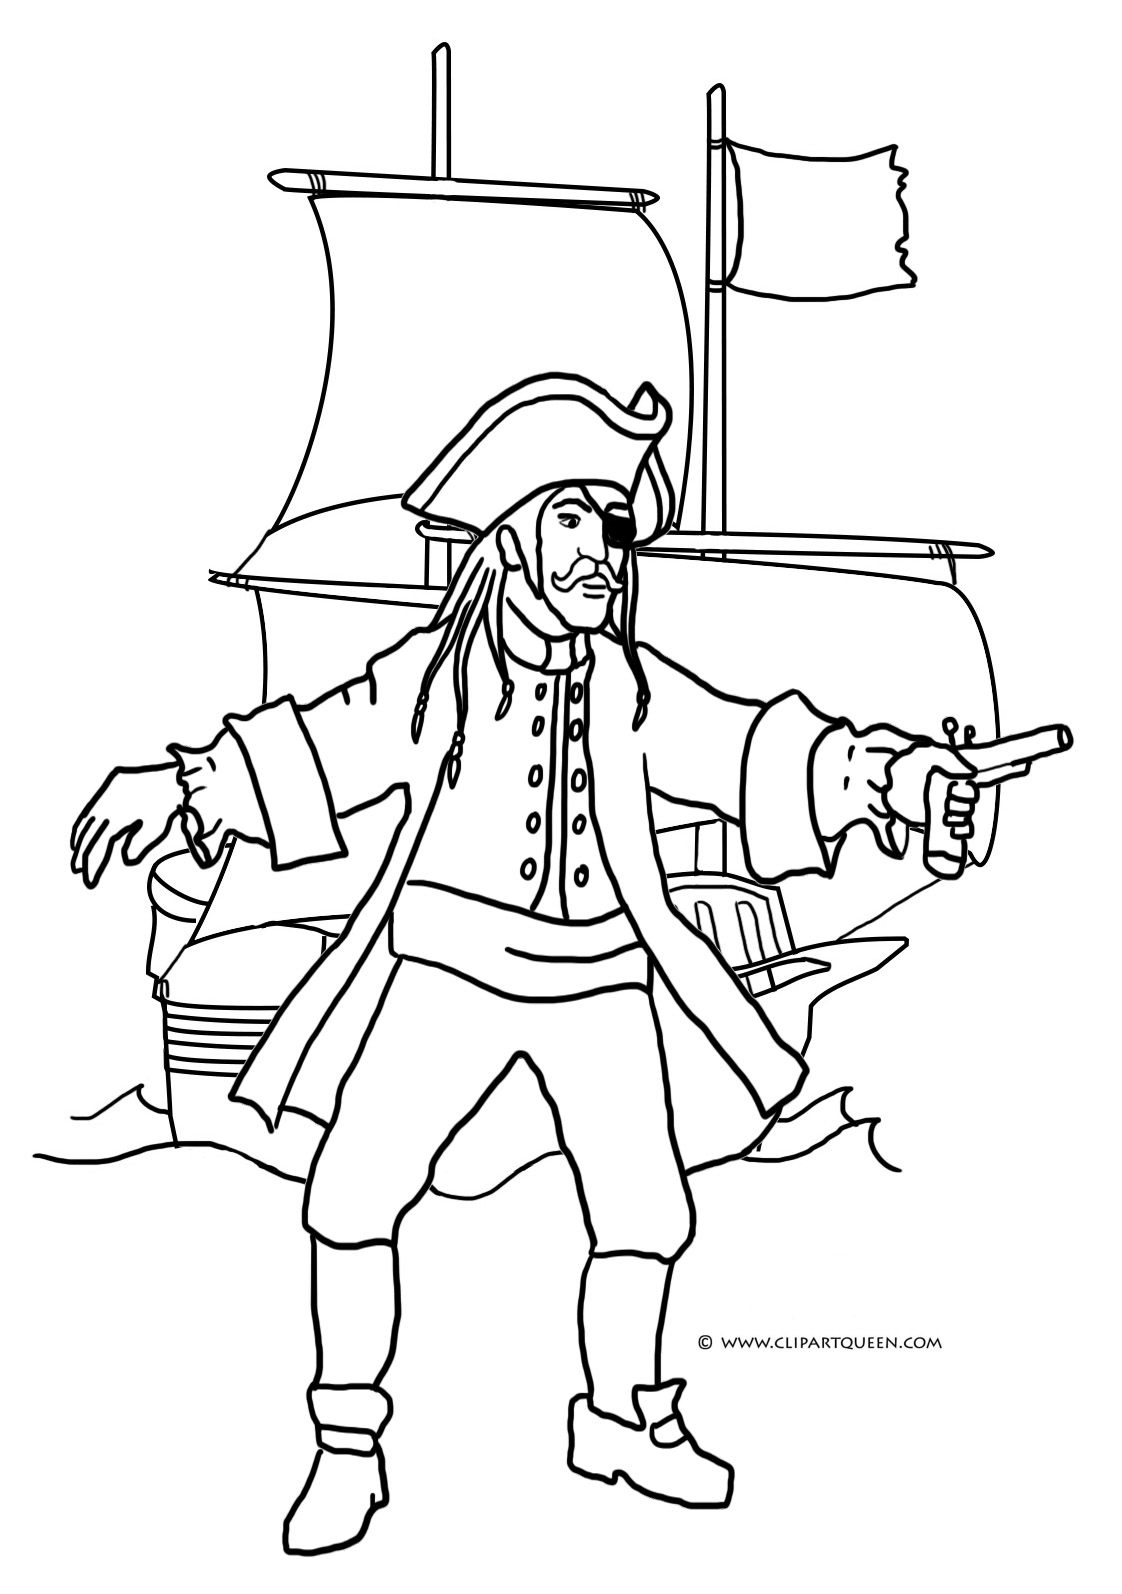 pirate coloring pages top 25 pirates coloring pages for toddlers pages coloring pirate